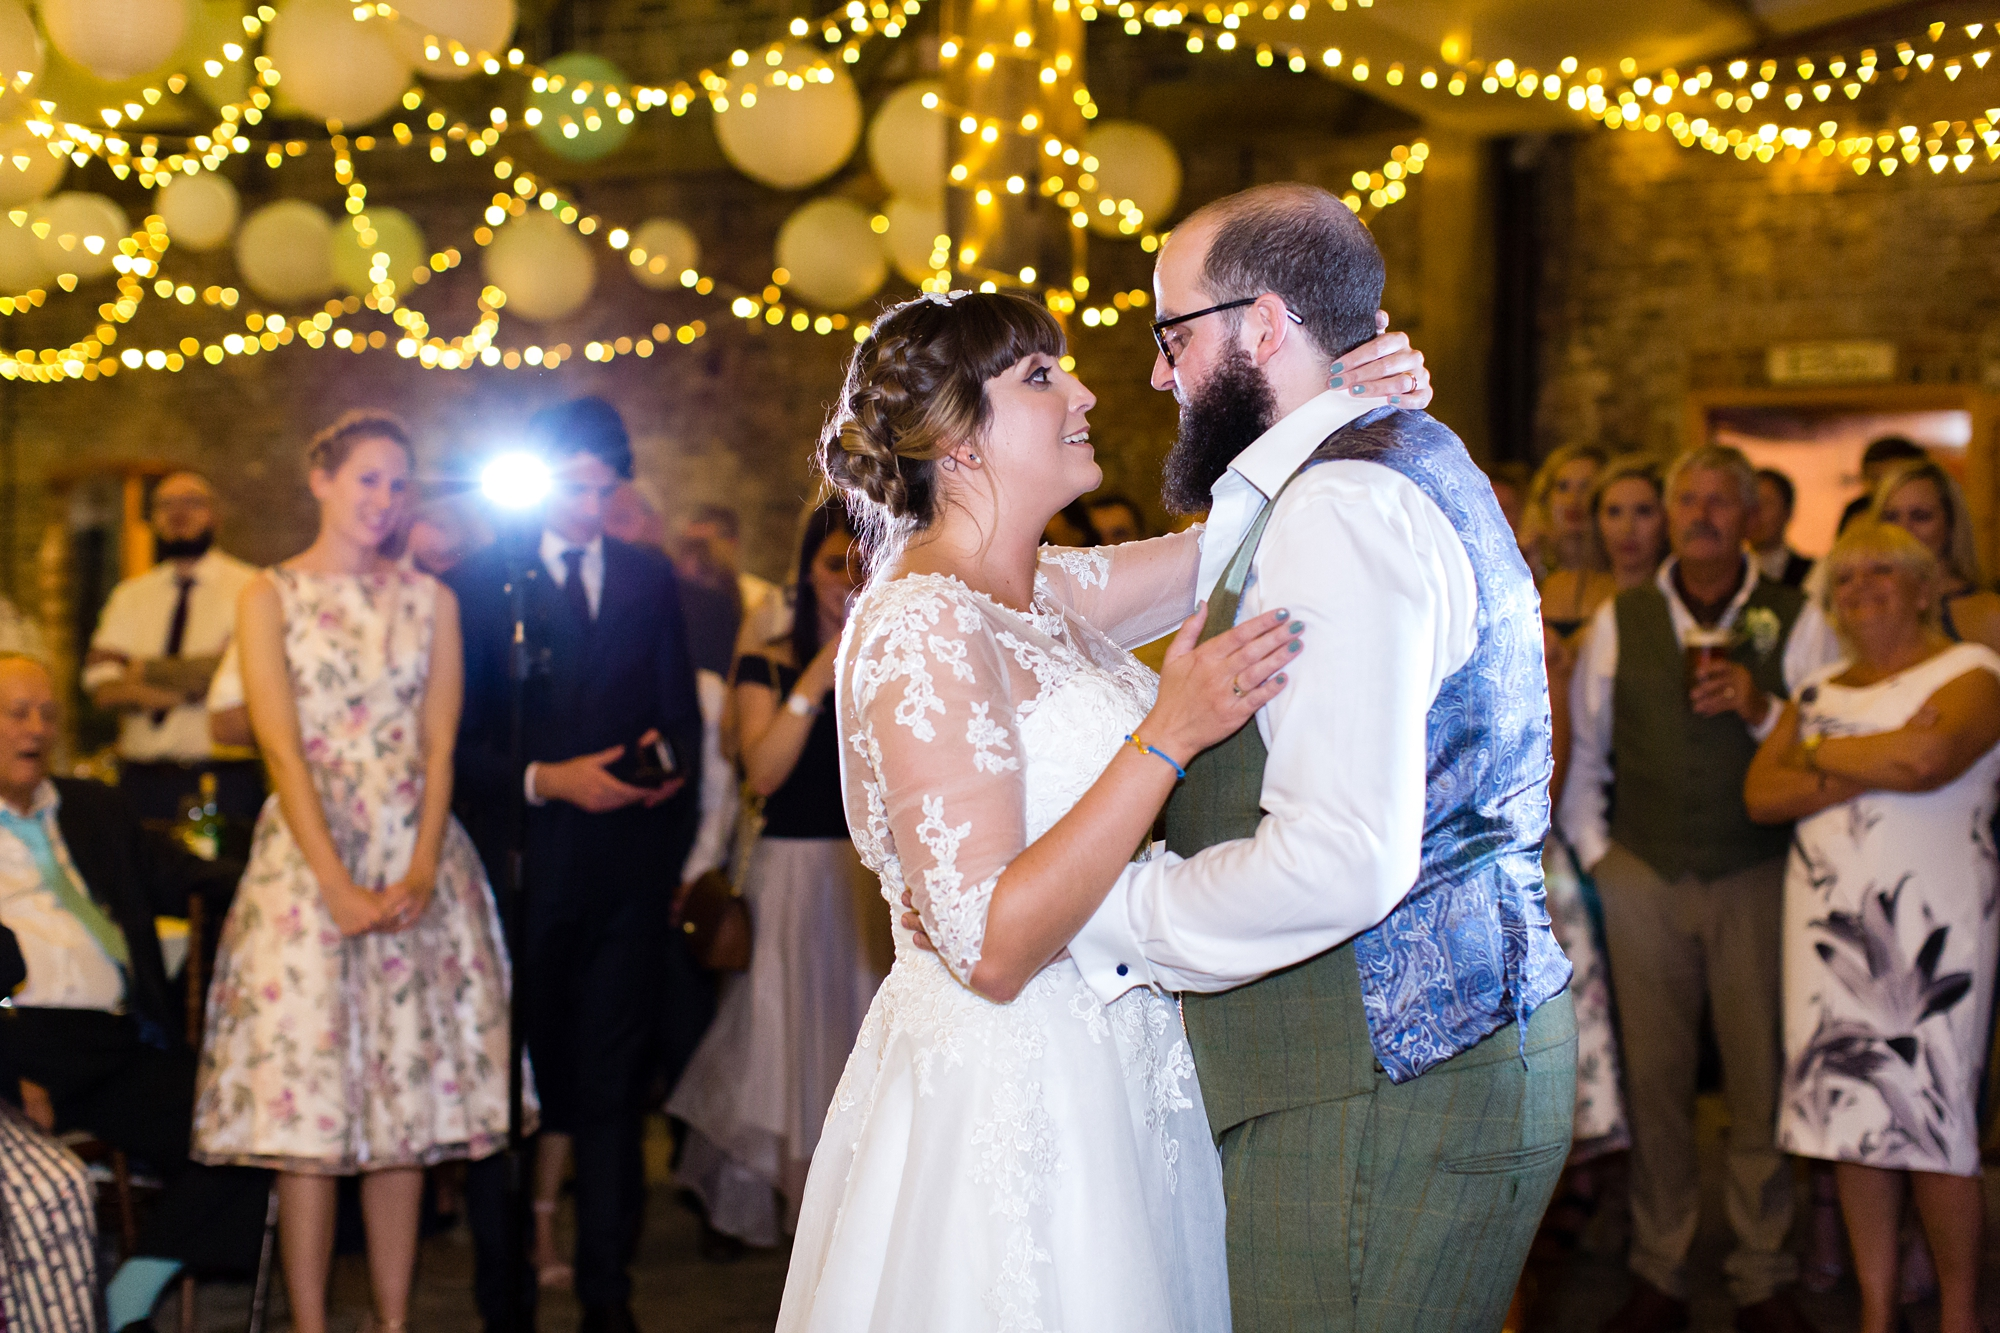 York Wedding Photography at Barmbyfield Barns first Dance